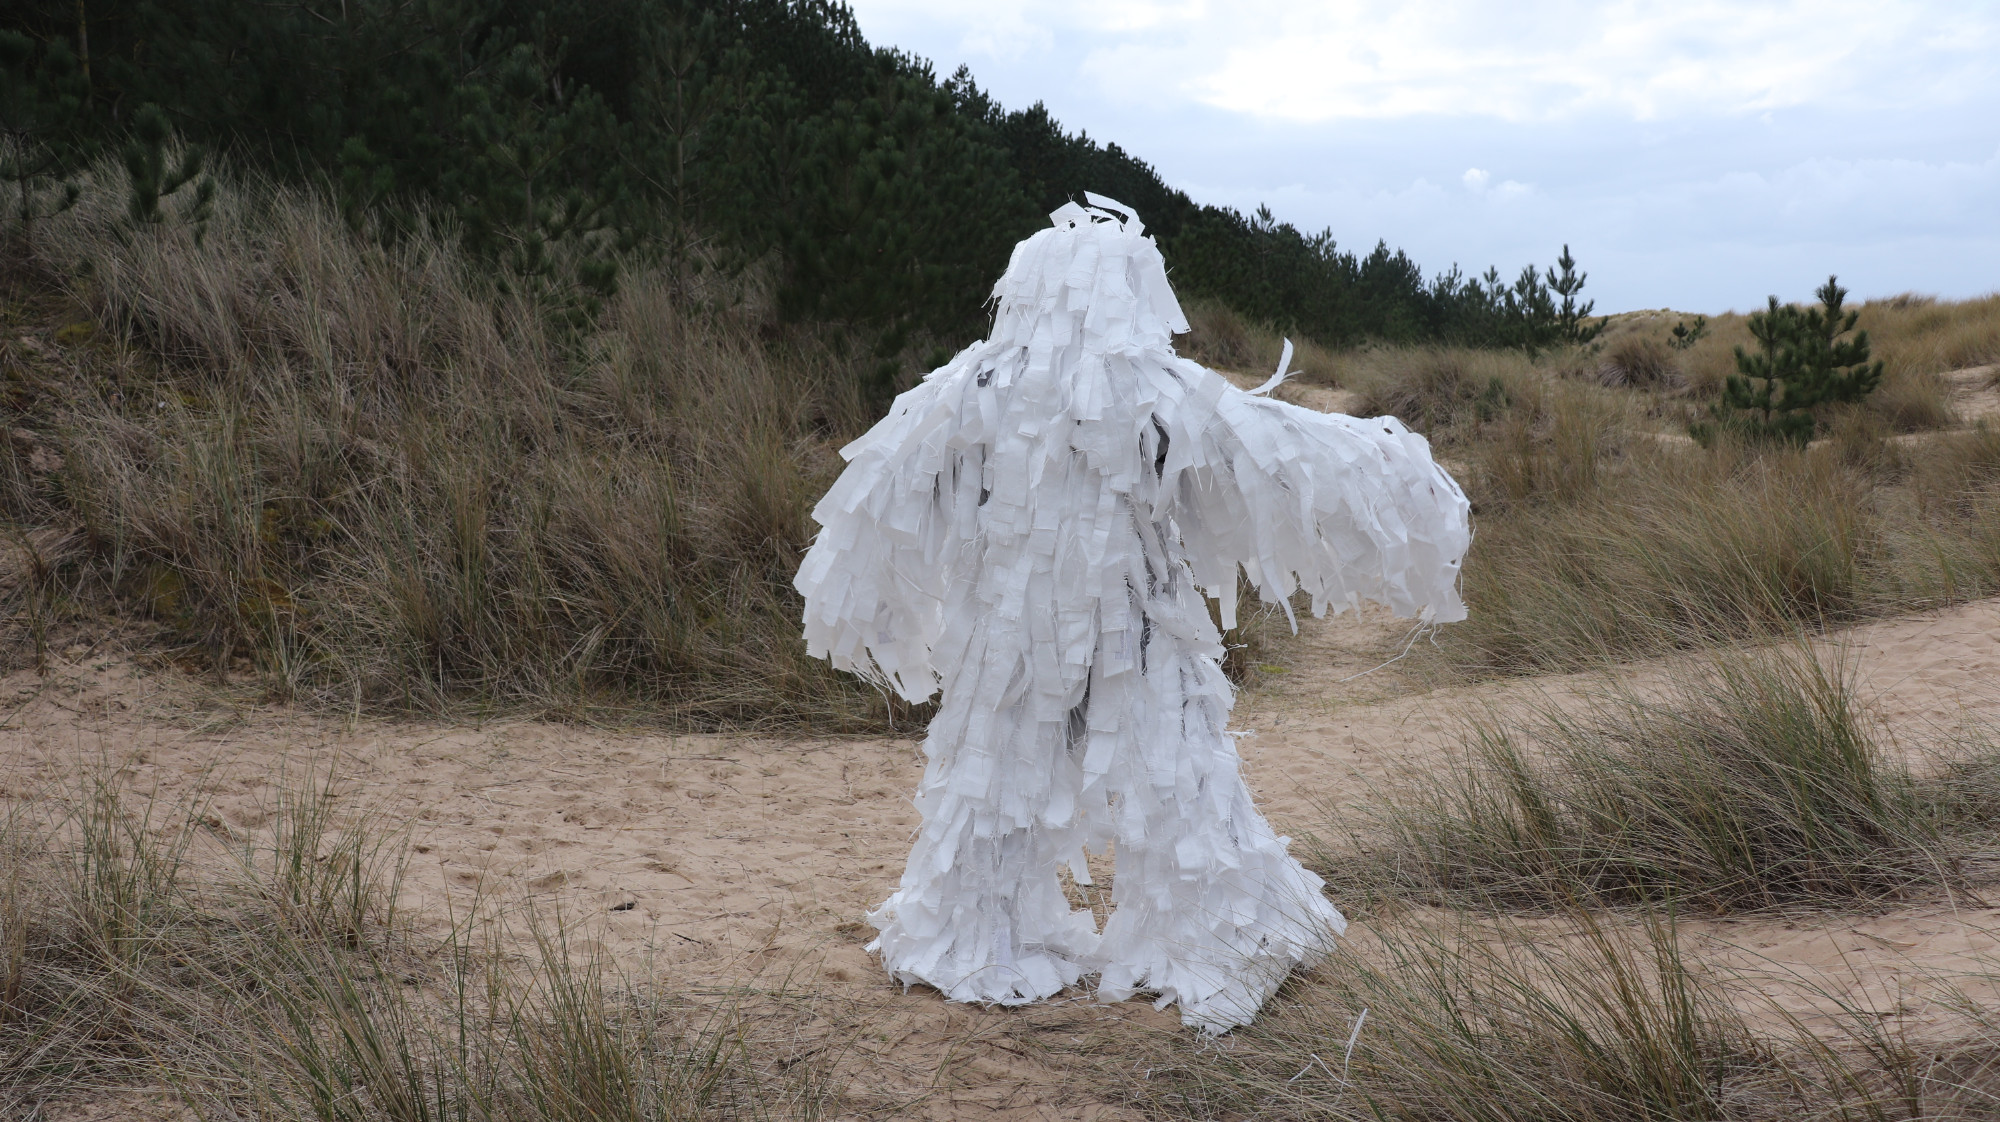 Polyprothene Creature, Full body suit made from recycled polypropylene rubble sacks, Image taken on Canon 800d